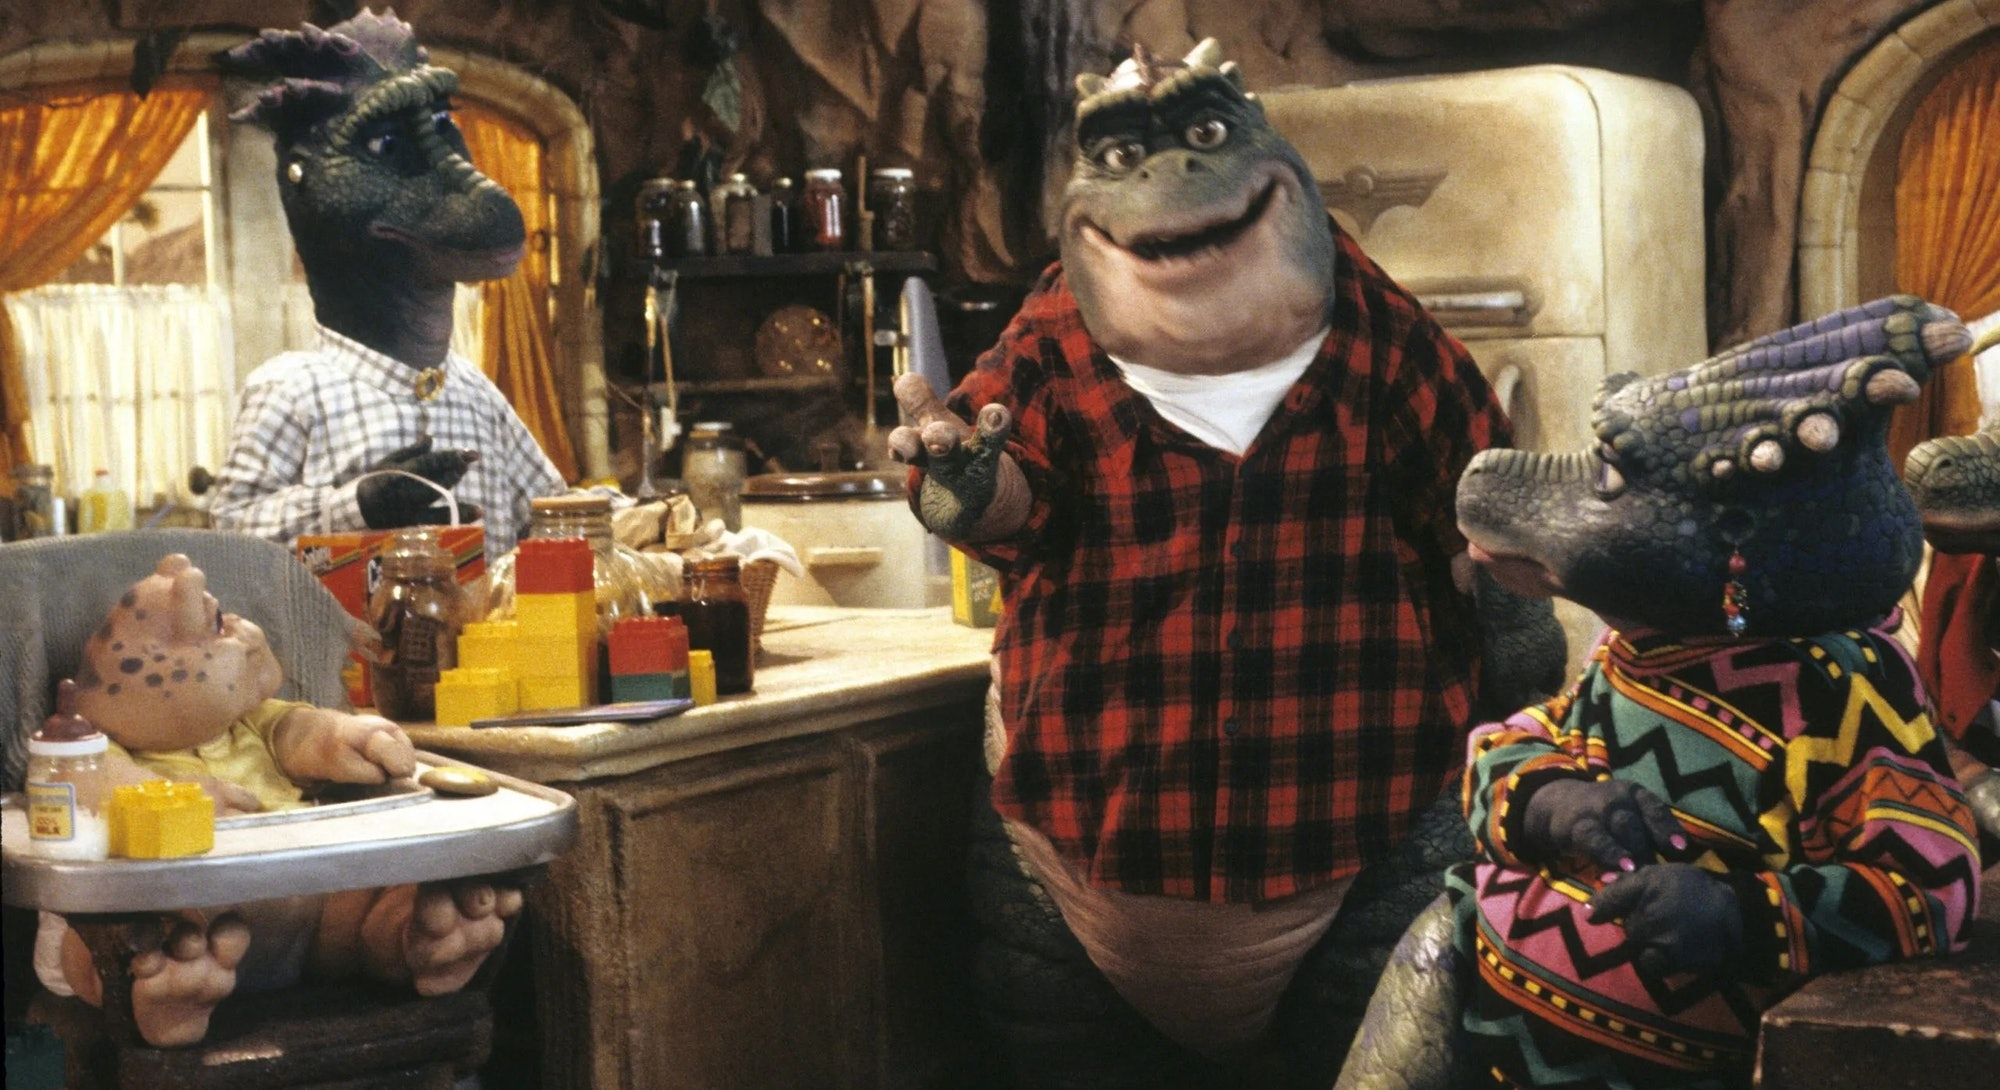 still from Dinosaurs TV show